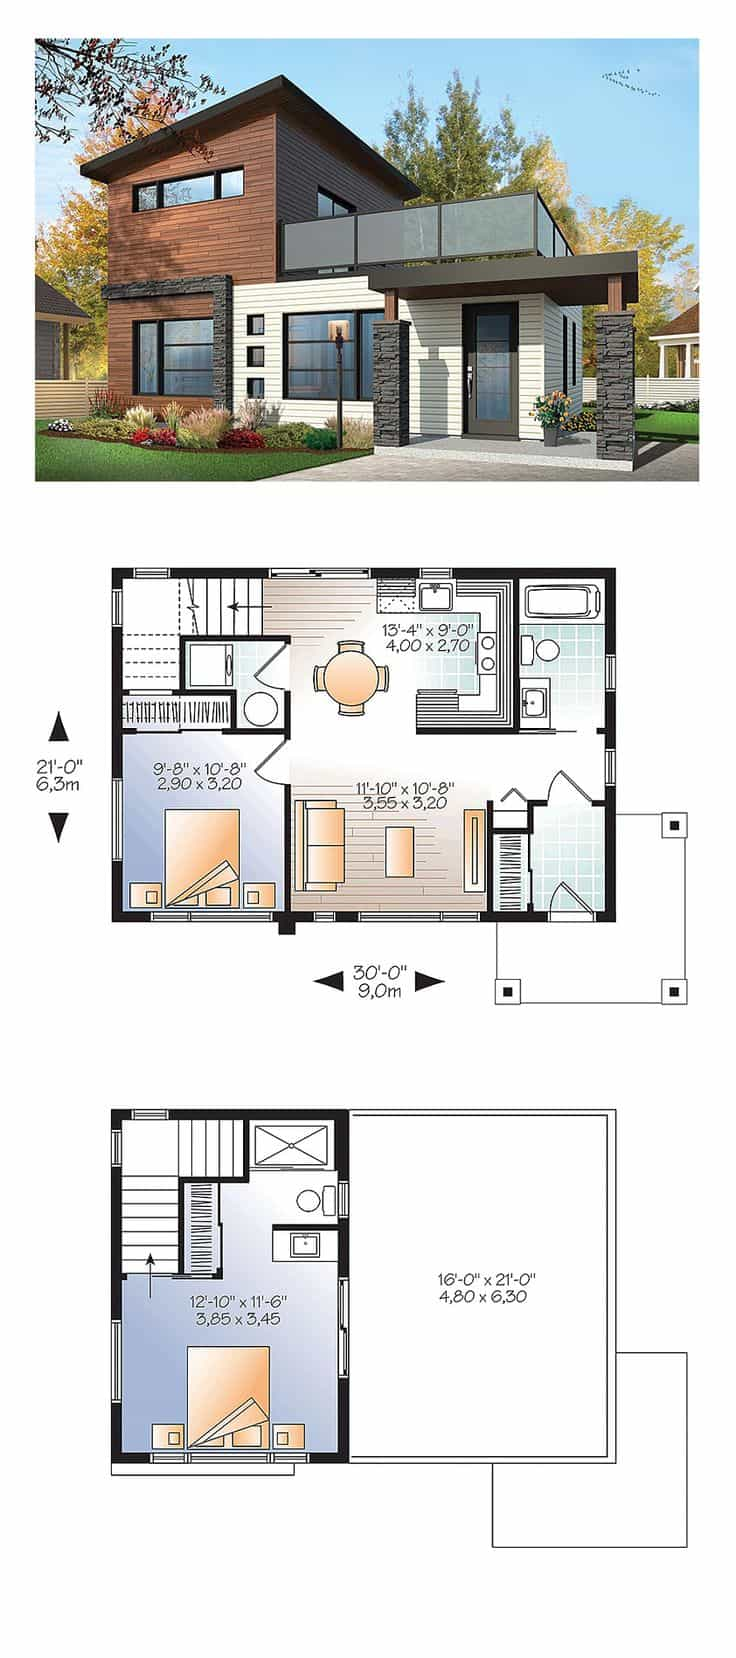 7 Modern House Plans Samples - Modern Home